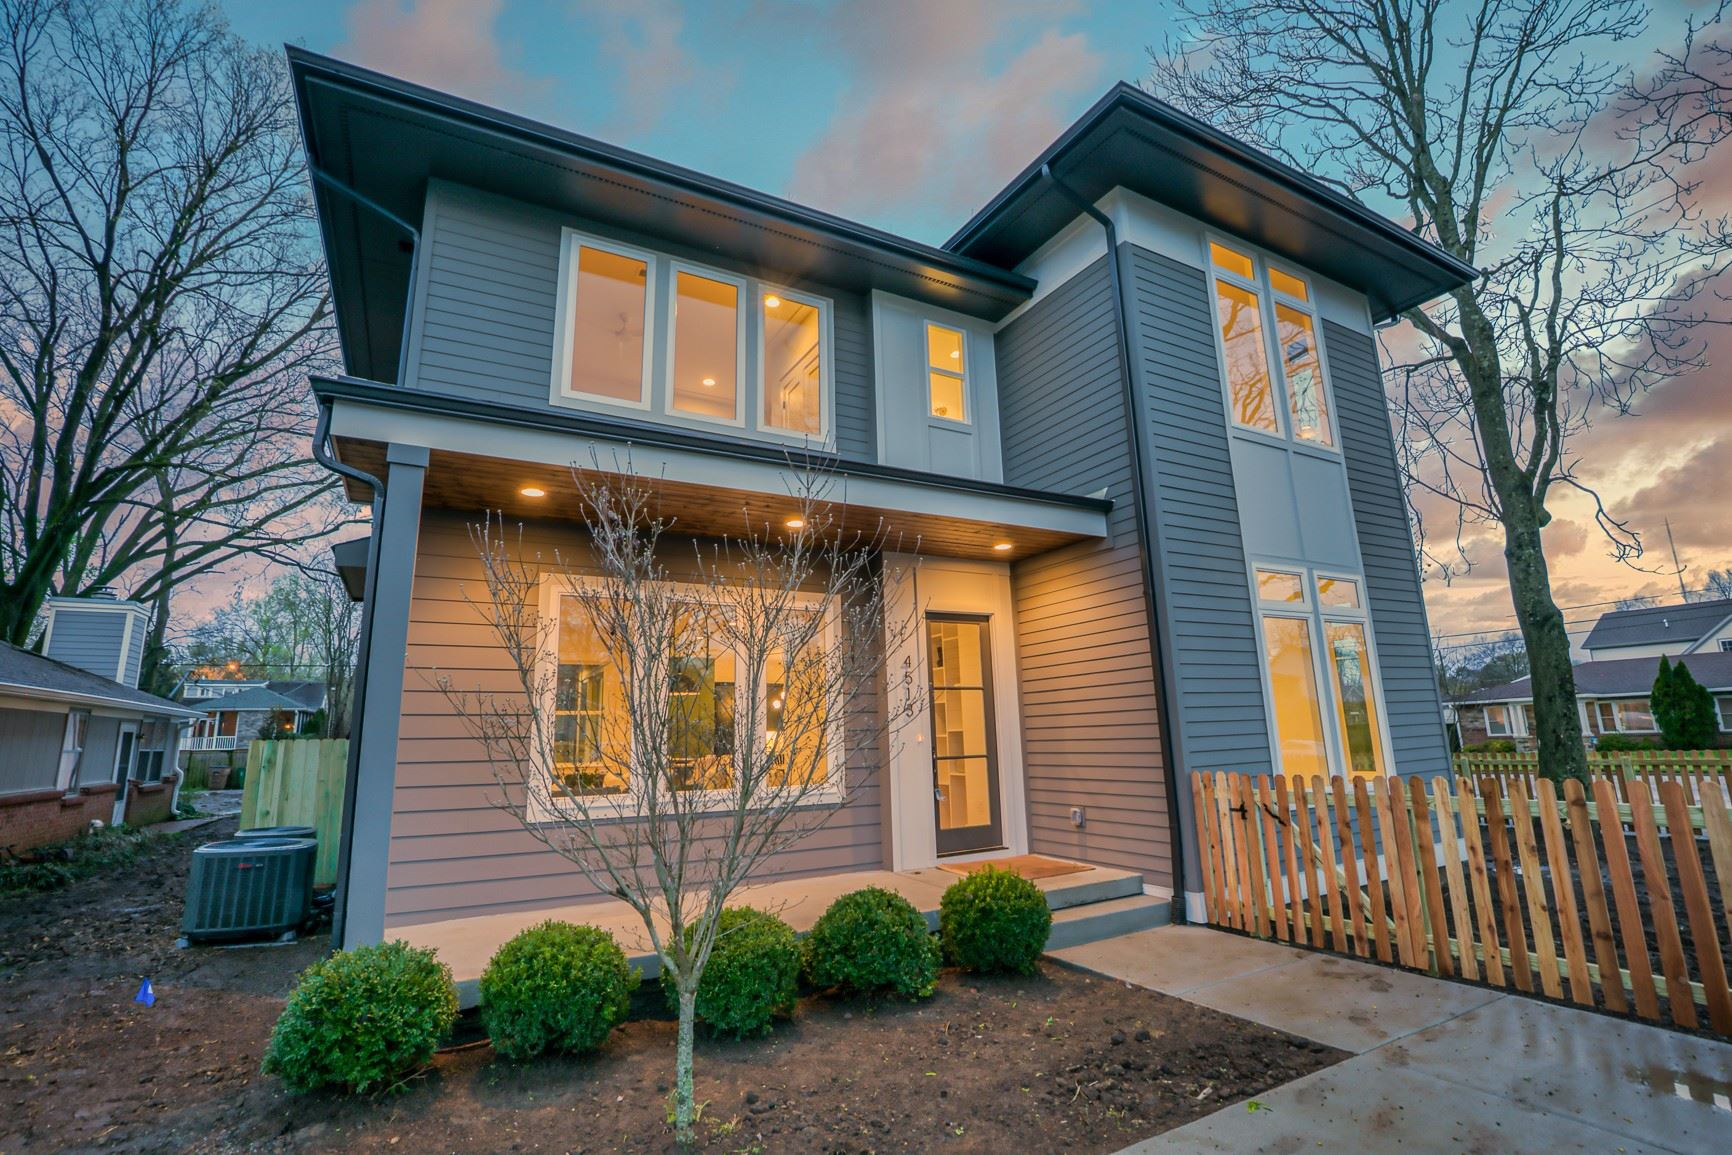 Photo of 4513A Idaho Ave, Nashville, TN 37209 (MLS # 2245565)